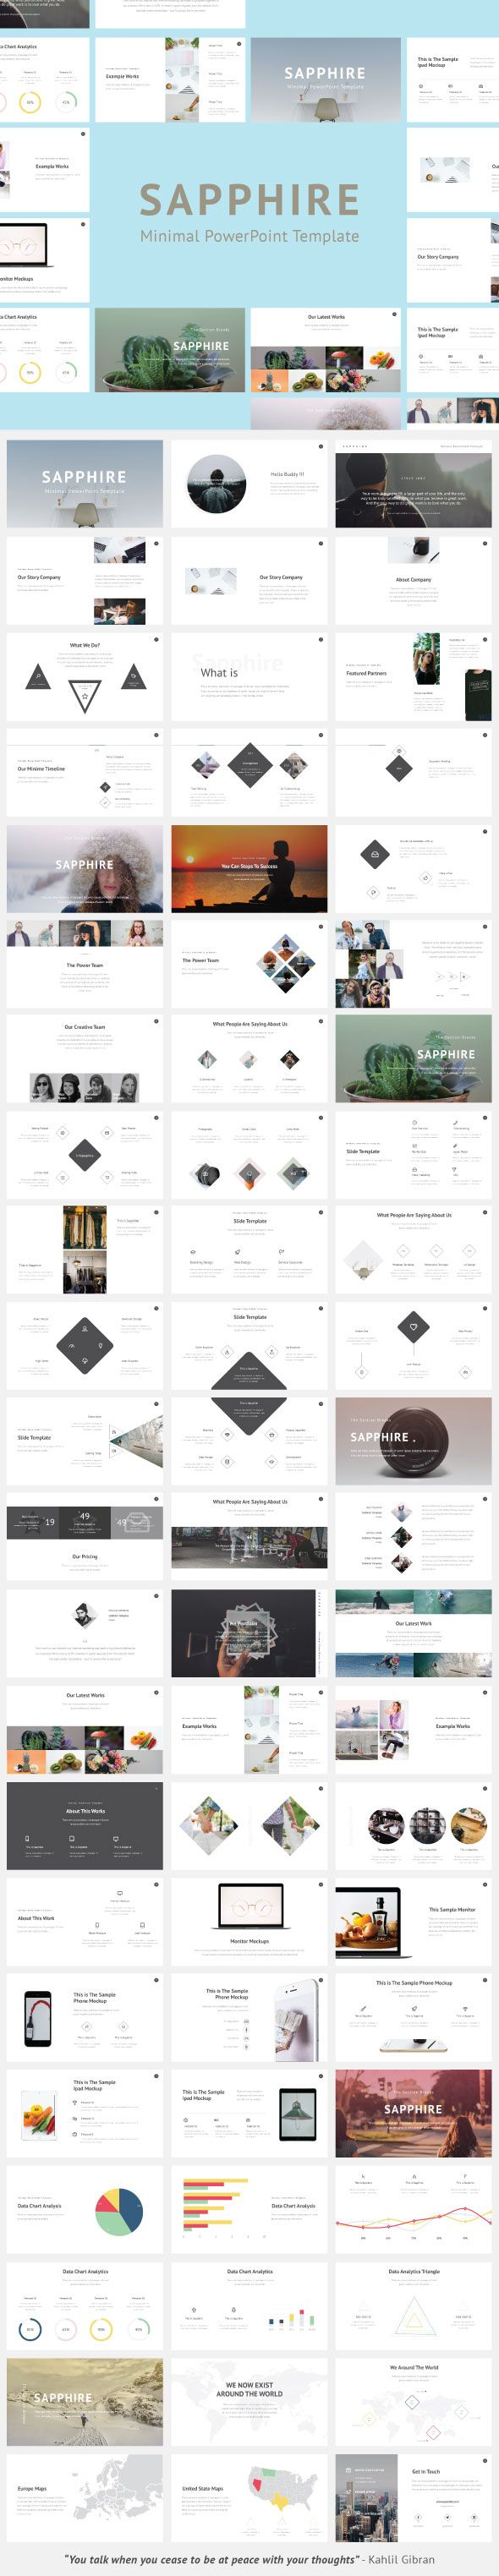 Sapphire Minimal PowerPoint Template